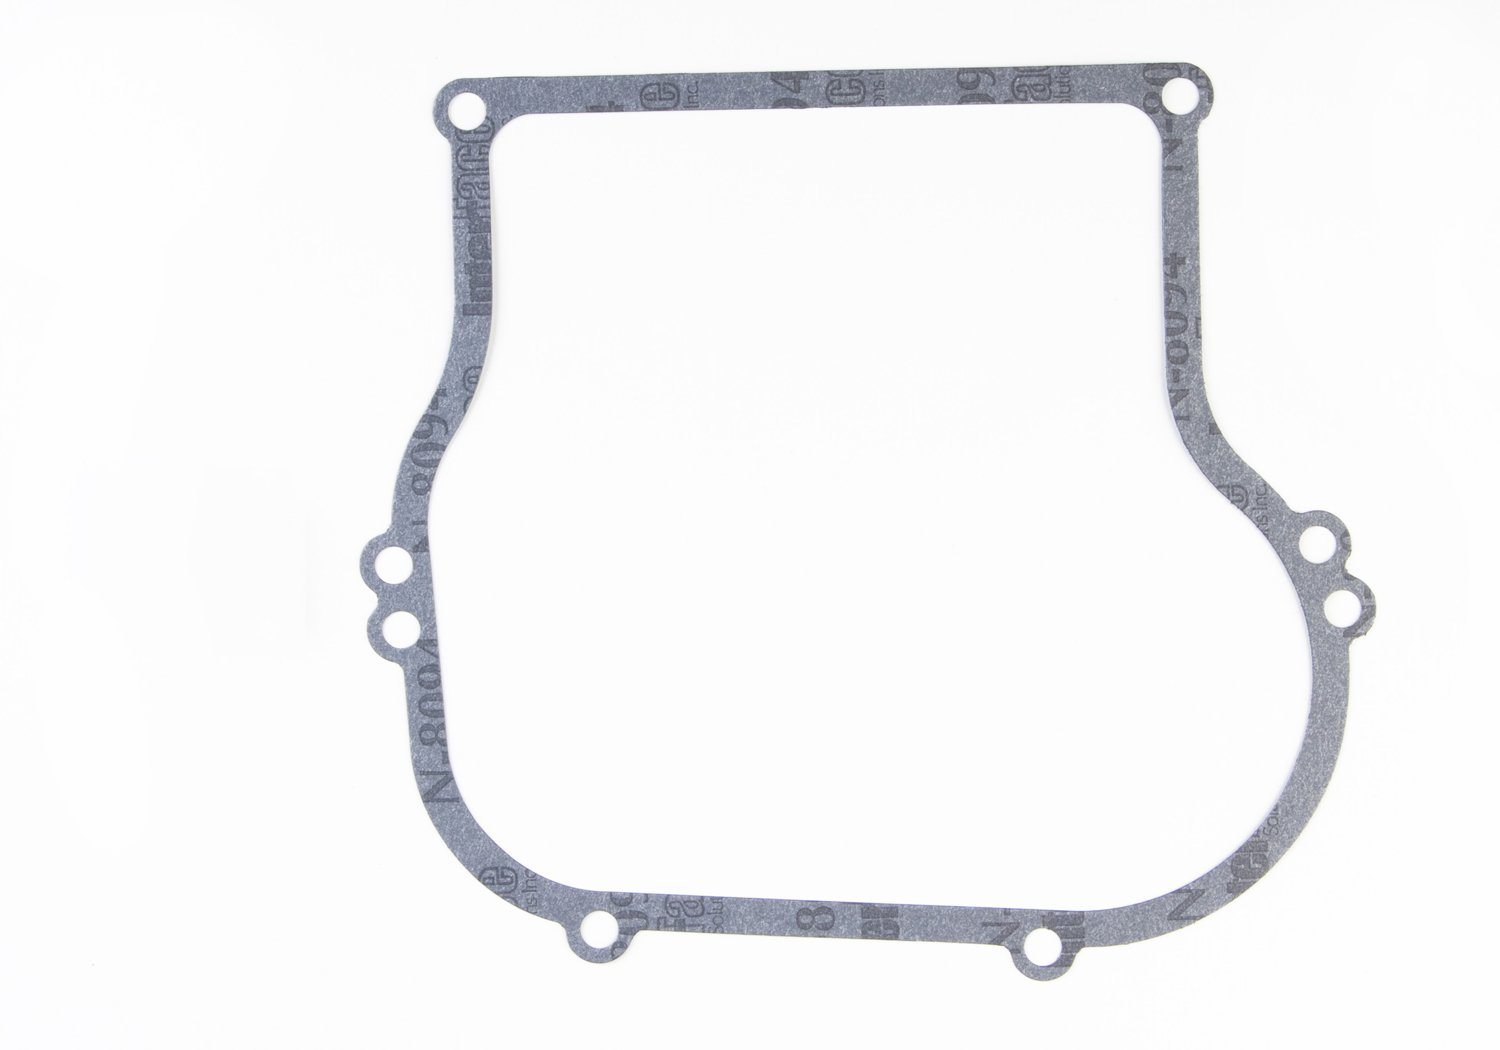 Briggs & Stratton 692213 Crankcase Gasket 015 Replacement for Models 270080 and 692213